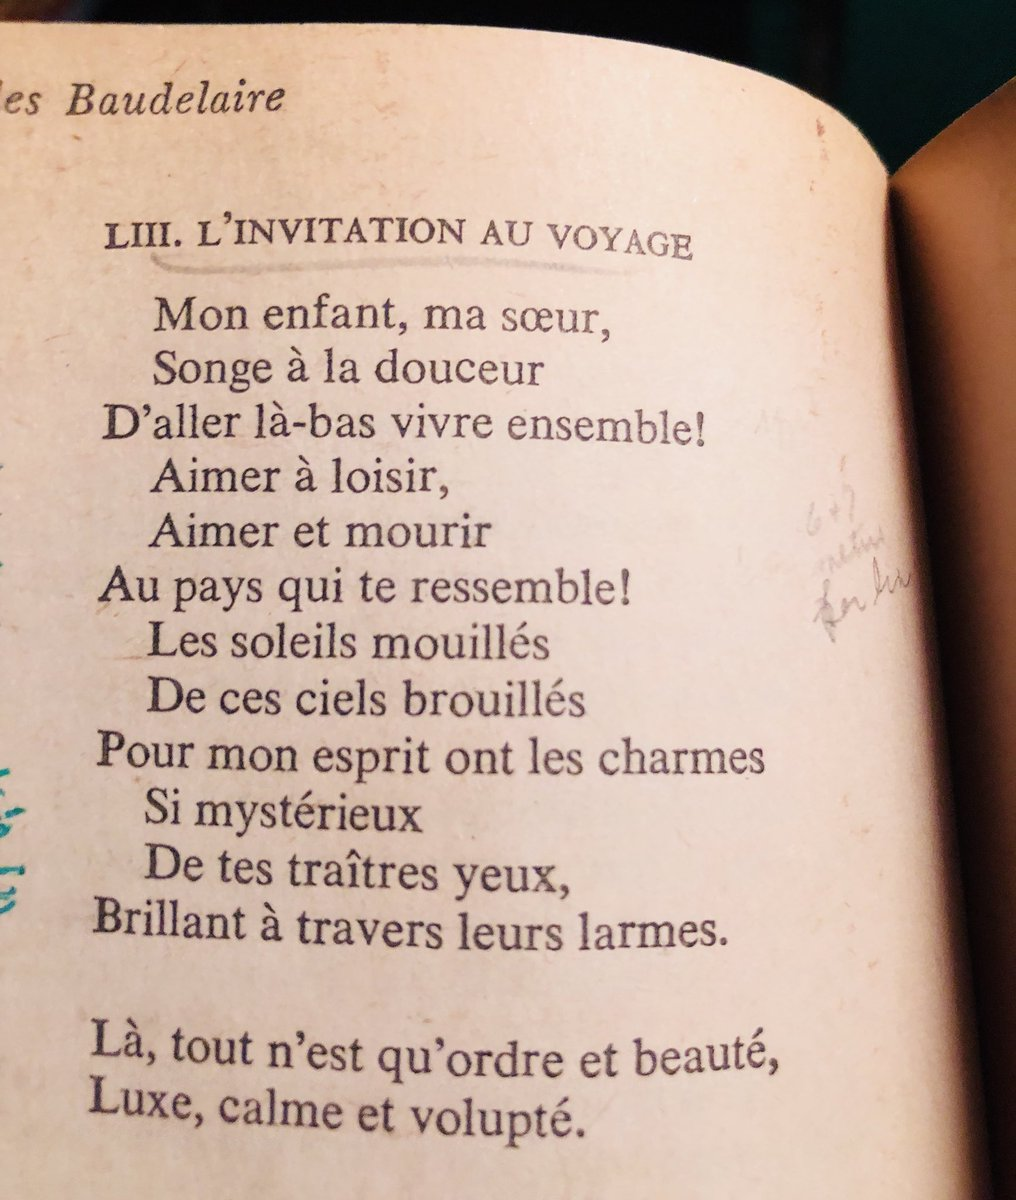 Eileen chengyin chow on twitter l tout nest quordre et beaut baudelaire linvitation au voyage httpsfleursdumalpoem148 a refrain edna vincent st millay rendered rather whimsically as there stopboris Gallery